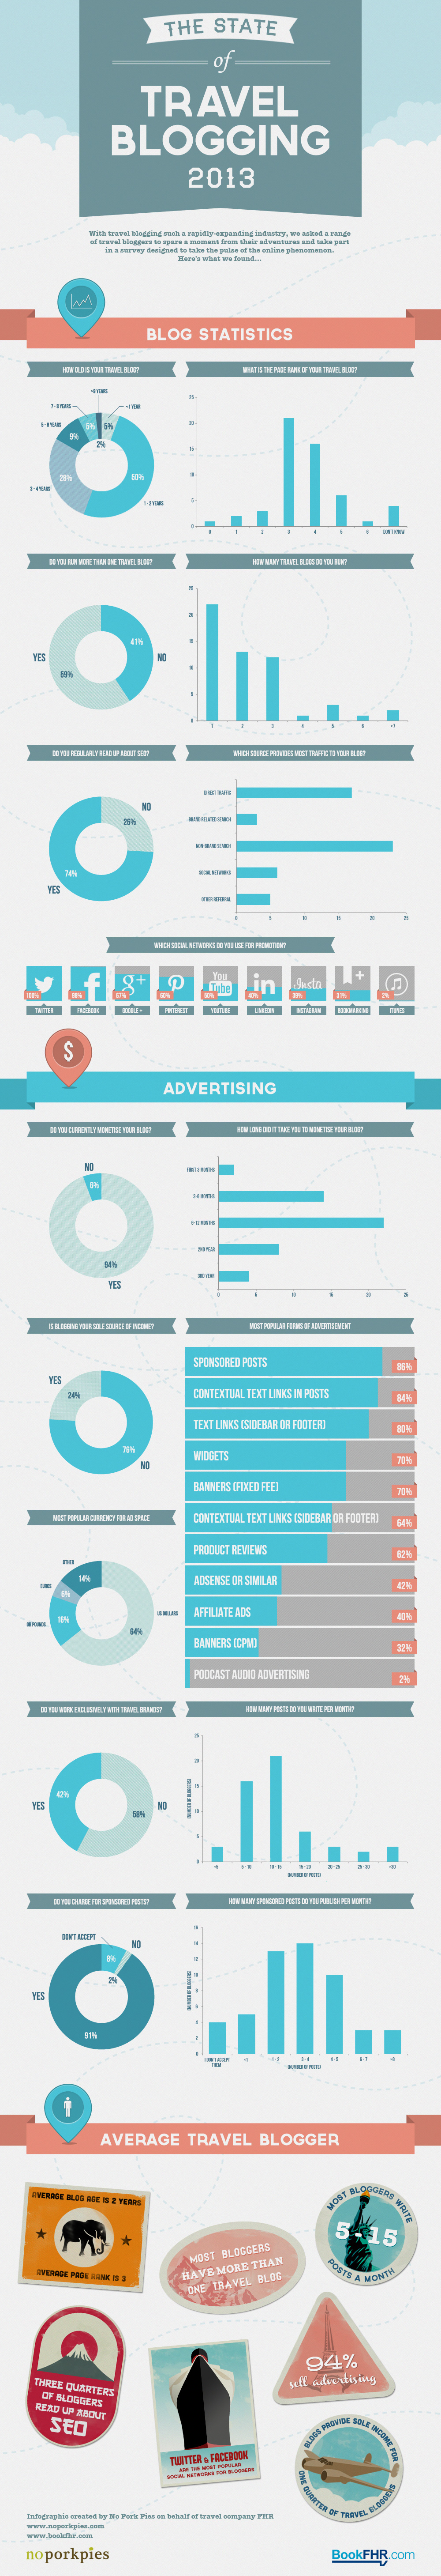 State of Travel Blogging 2013 - Infographic